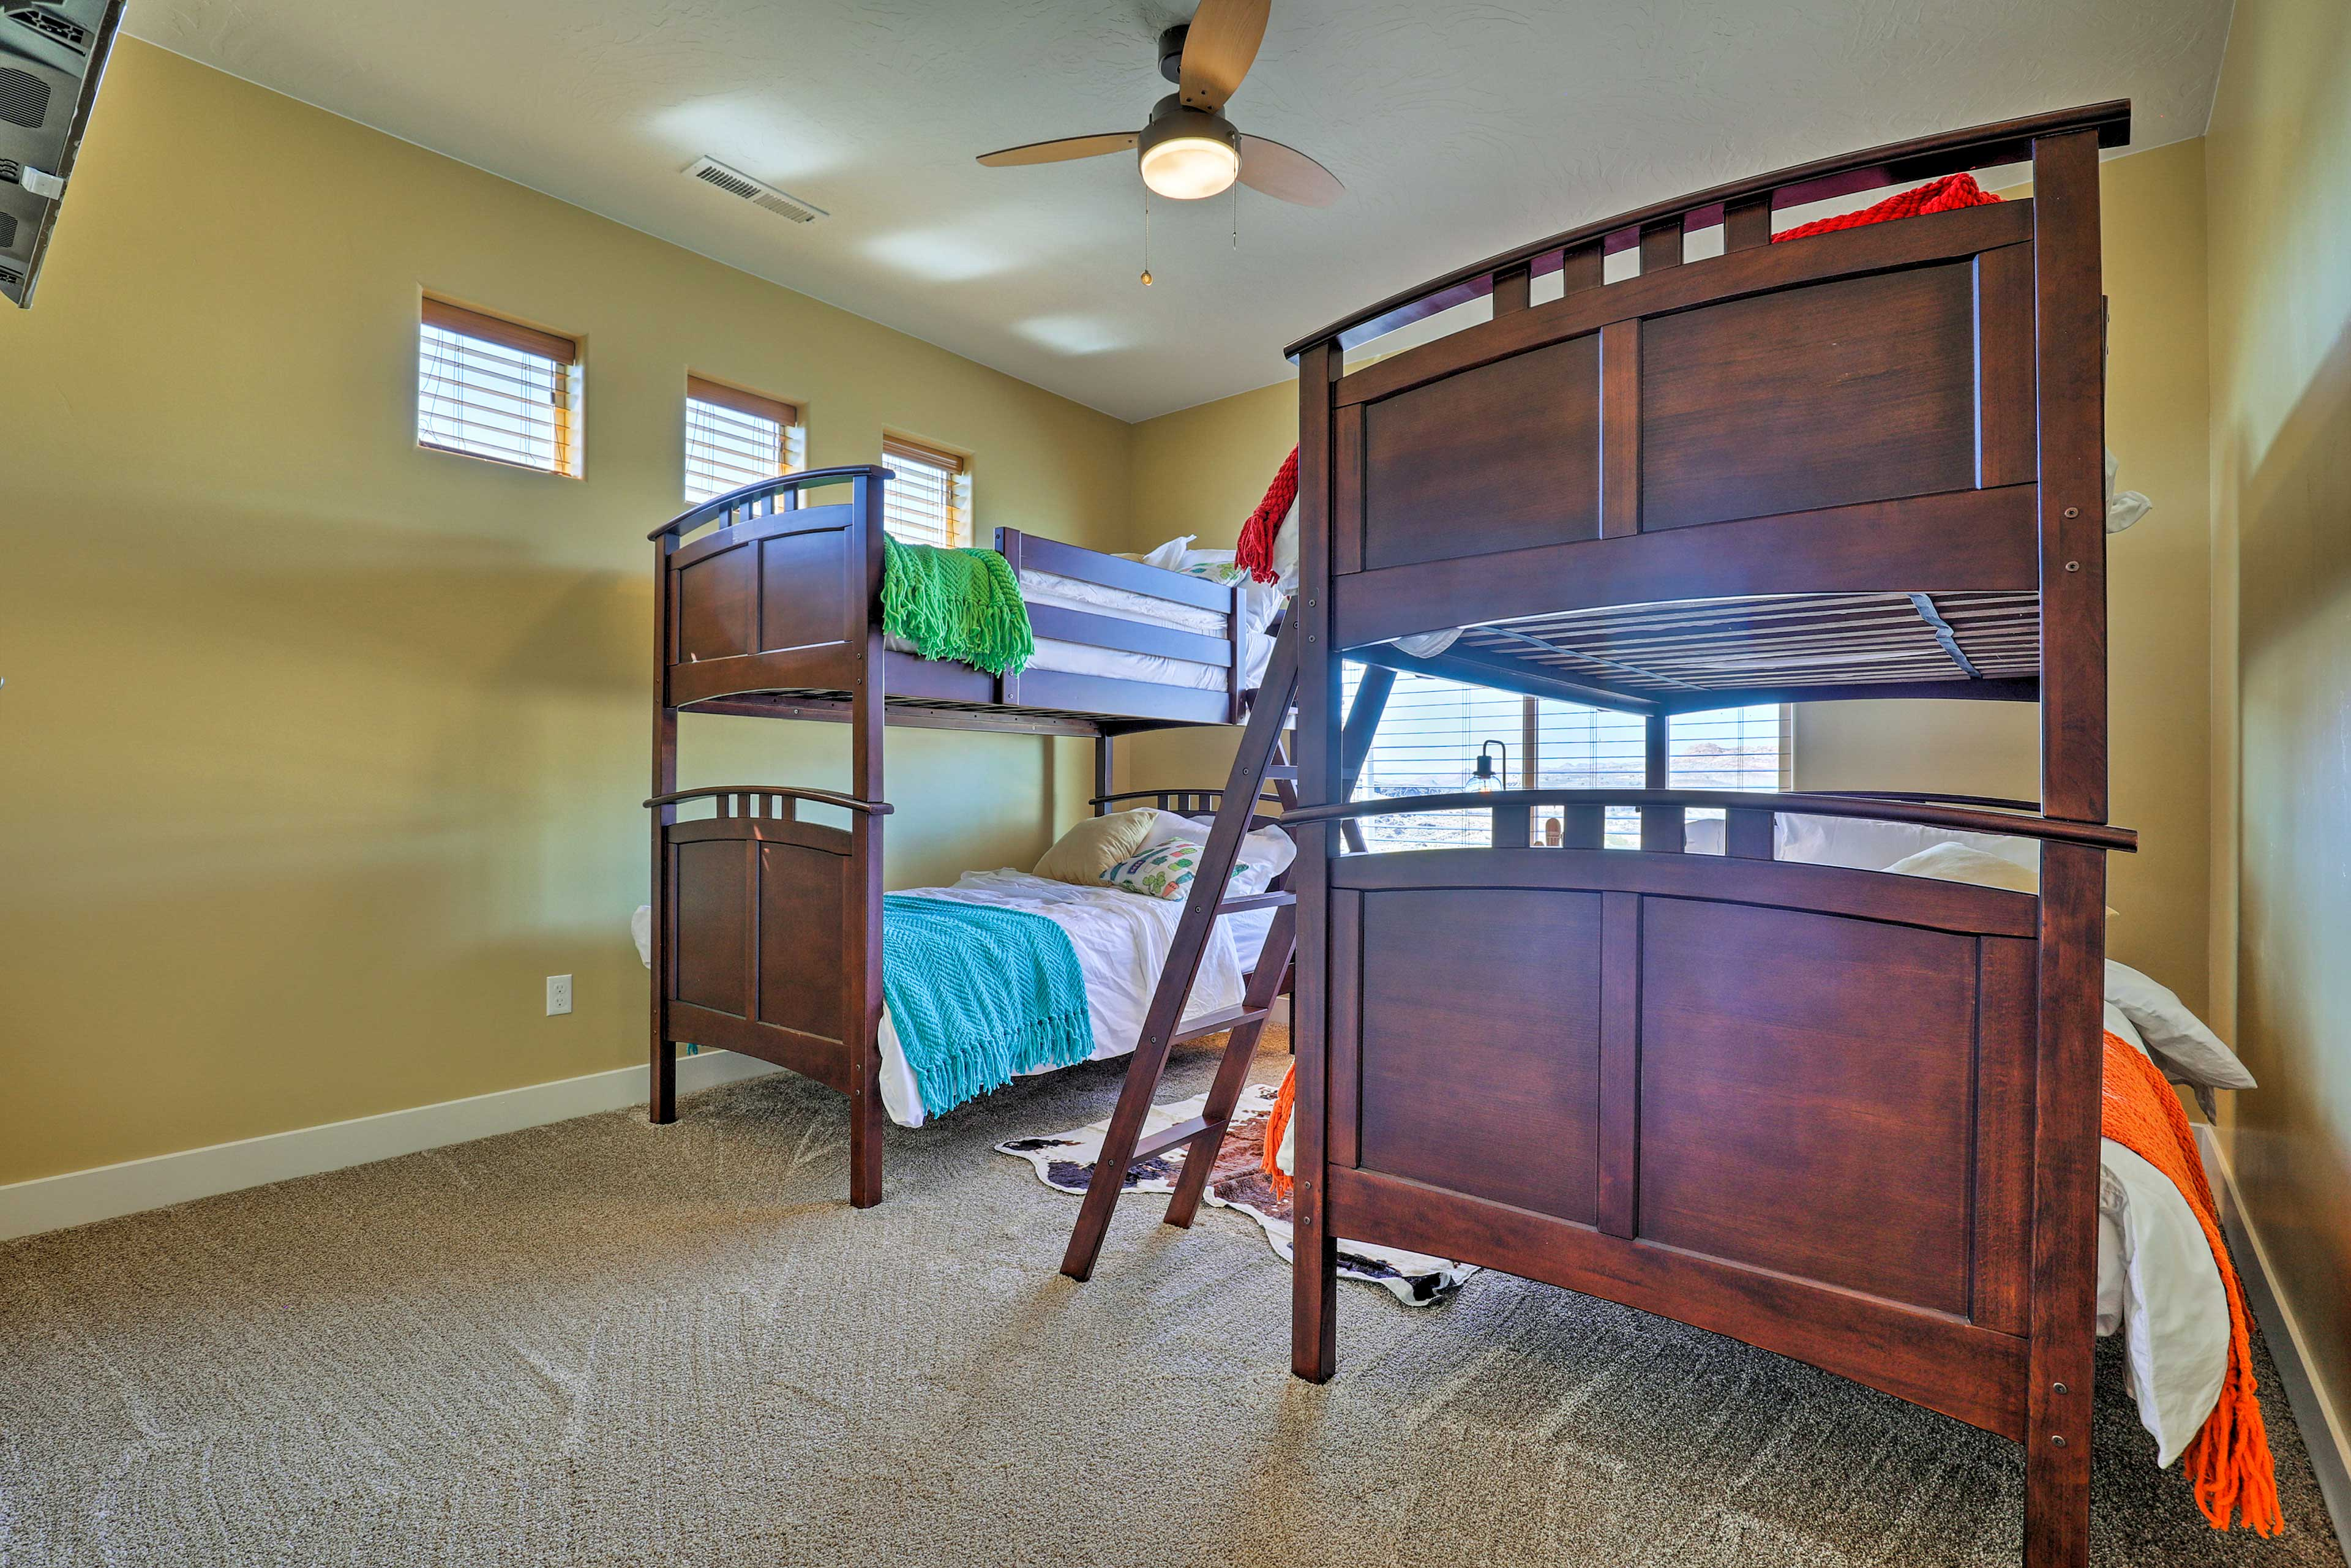 Kids will love this room!